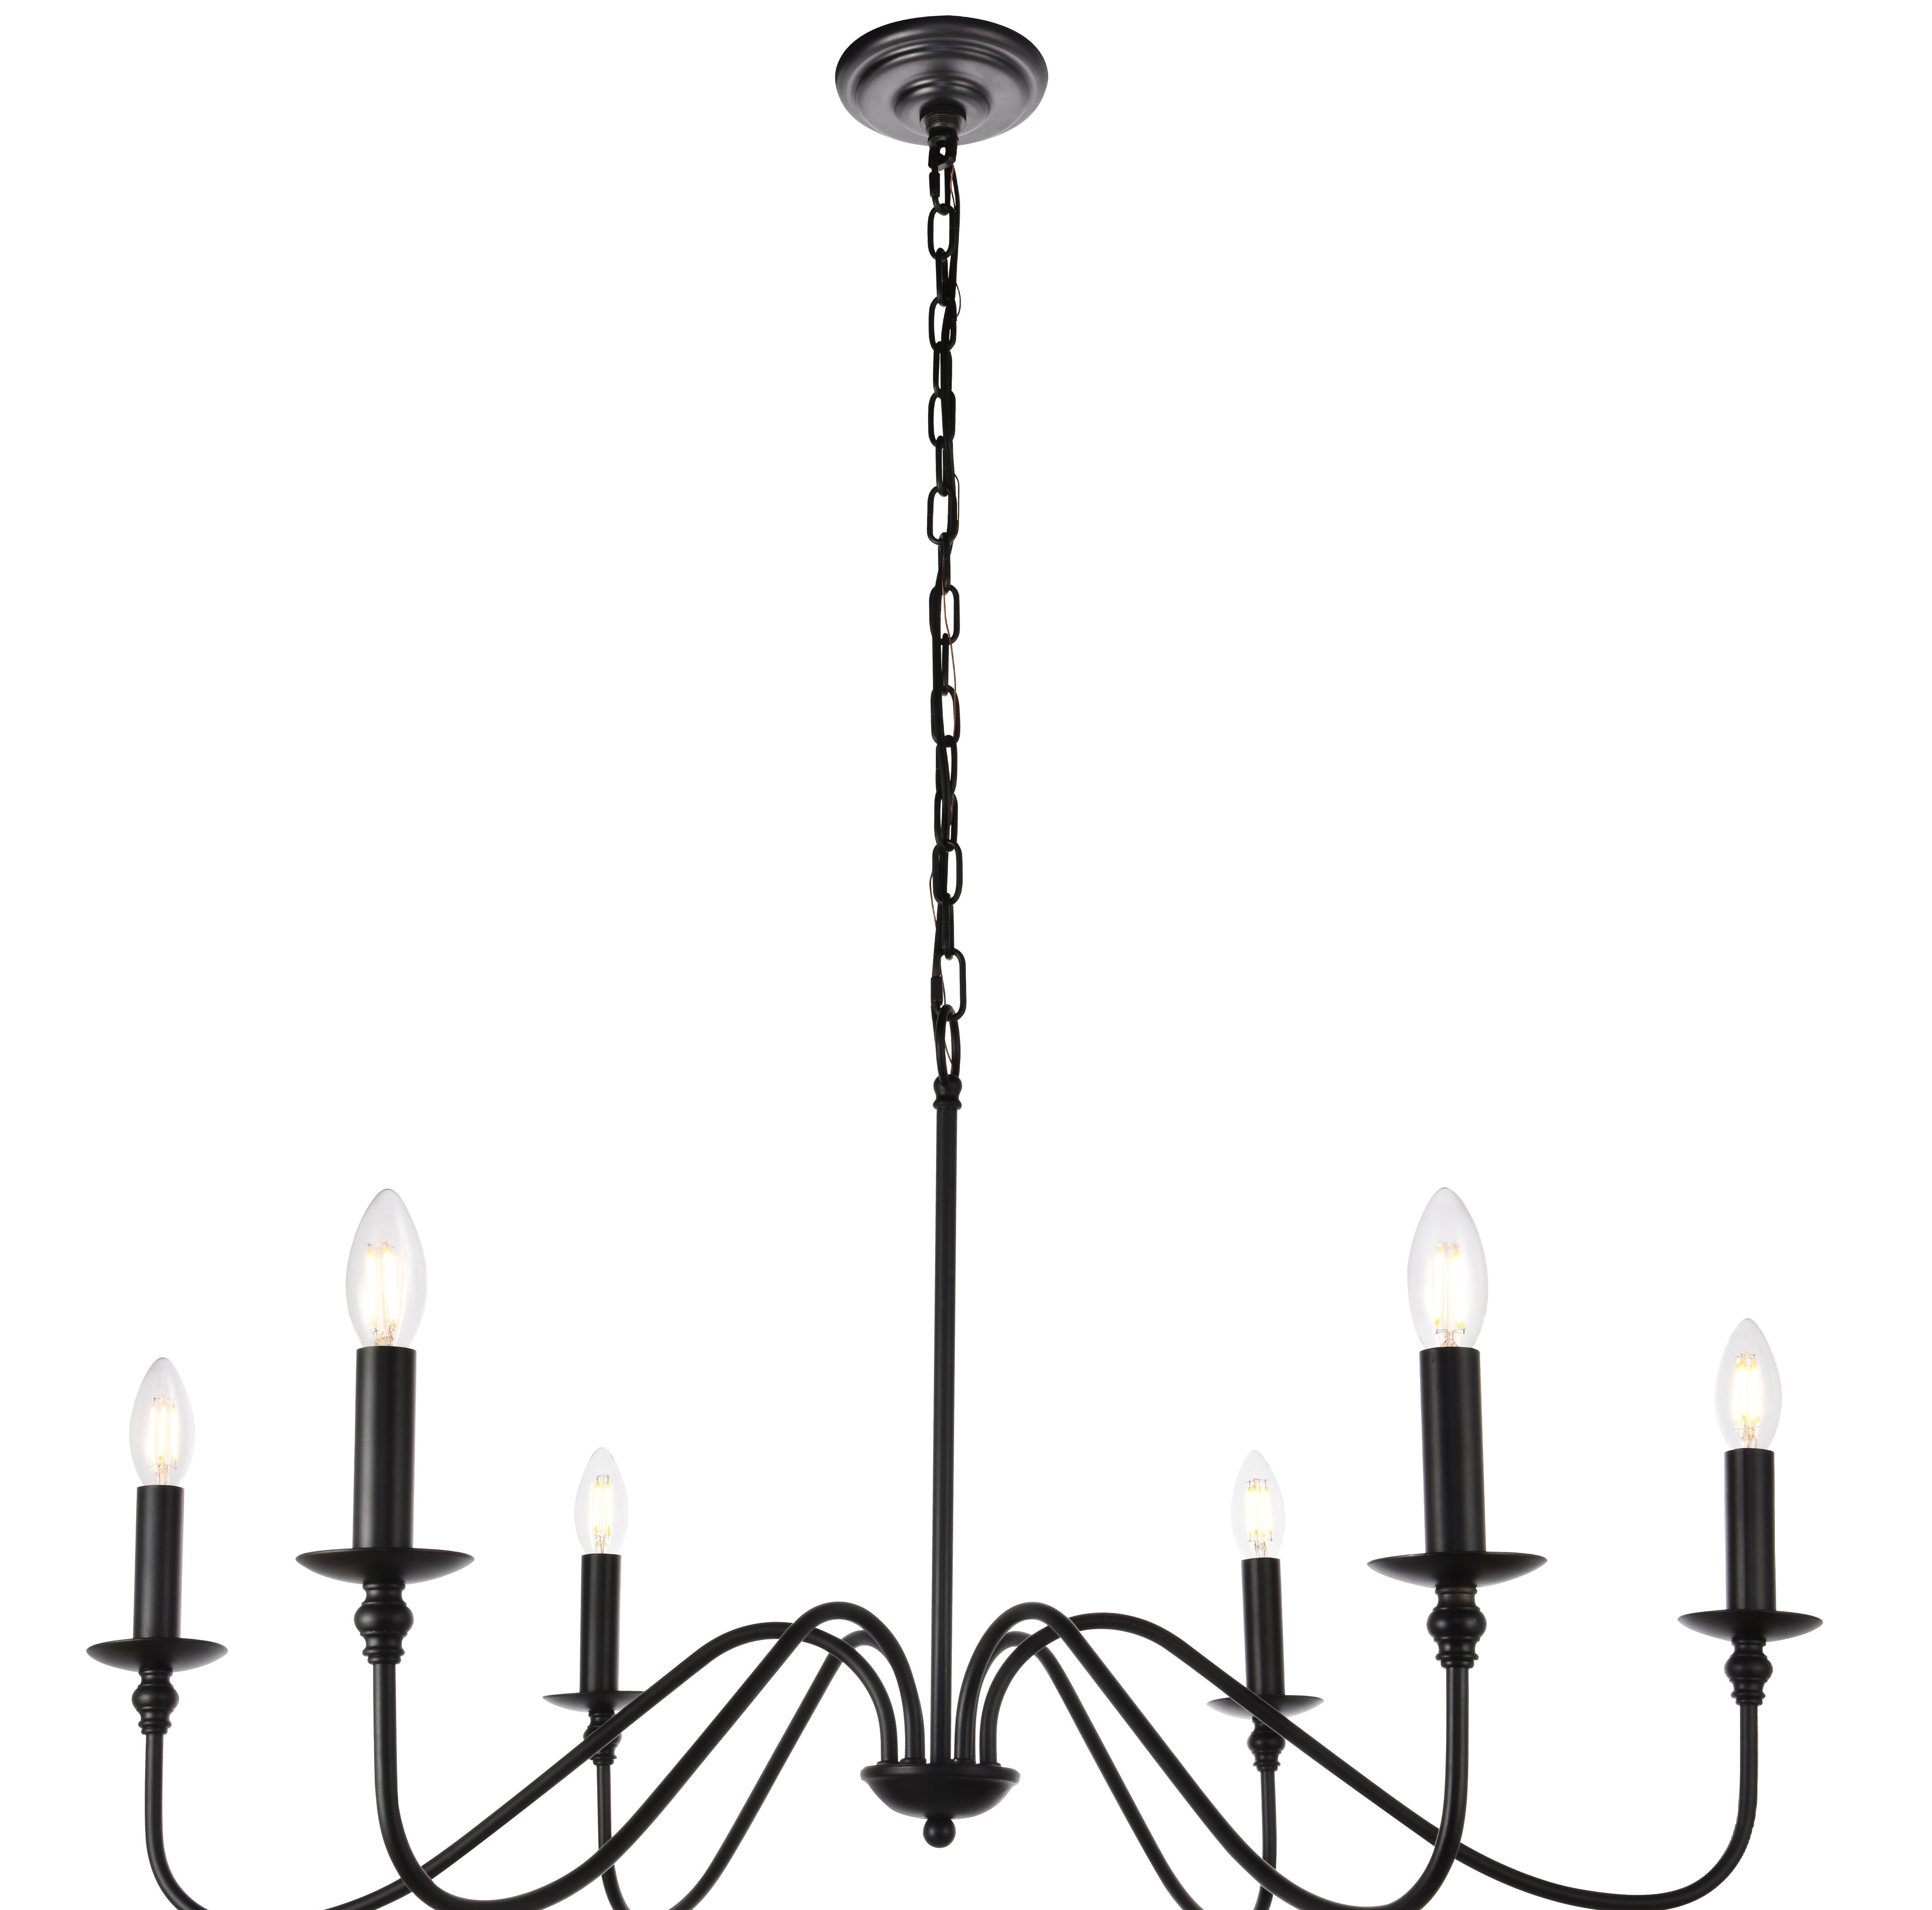 Gregoire 6 Light Globe Chandeliers For Fashionable Laurel Foundry Modern Farmhouse Hamza 6 Light Candle Style Chandelier (View 23 of 25)